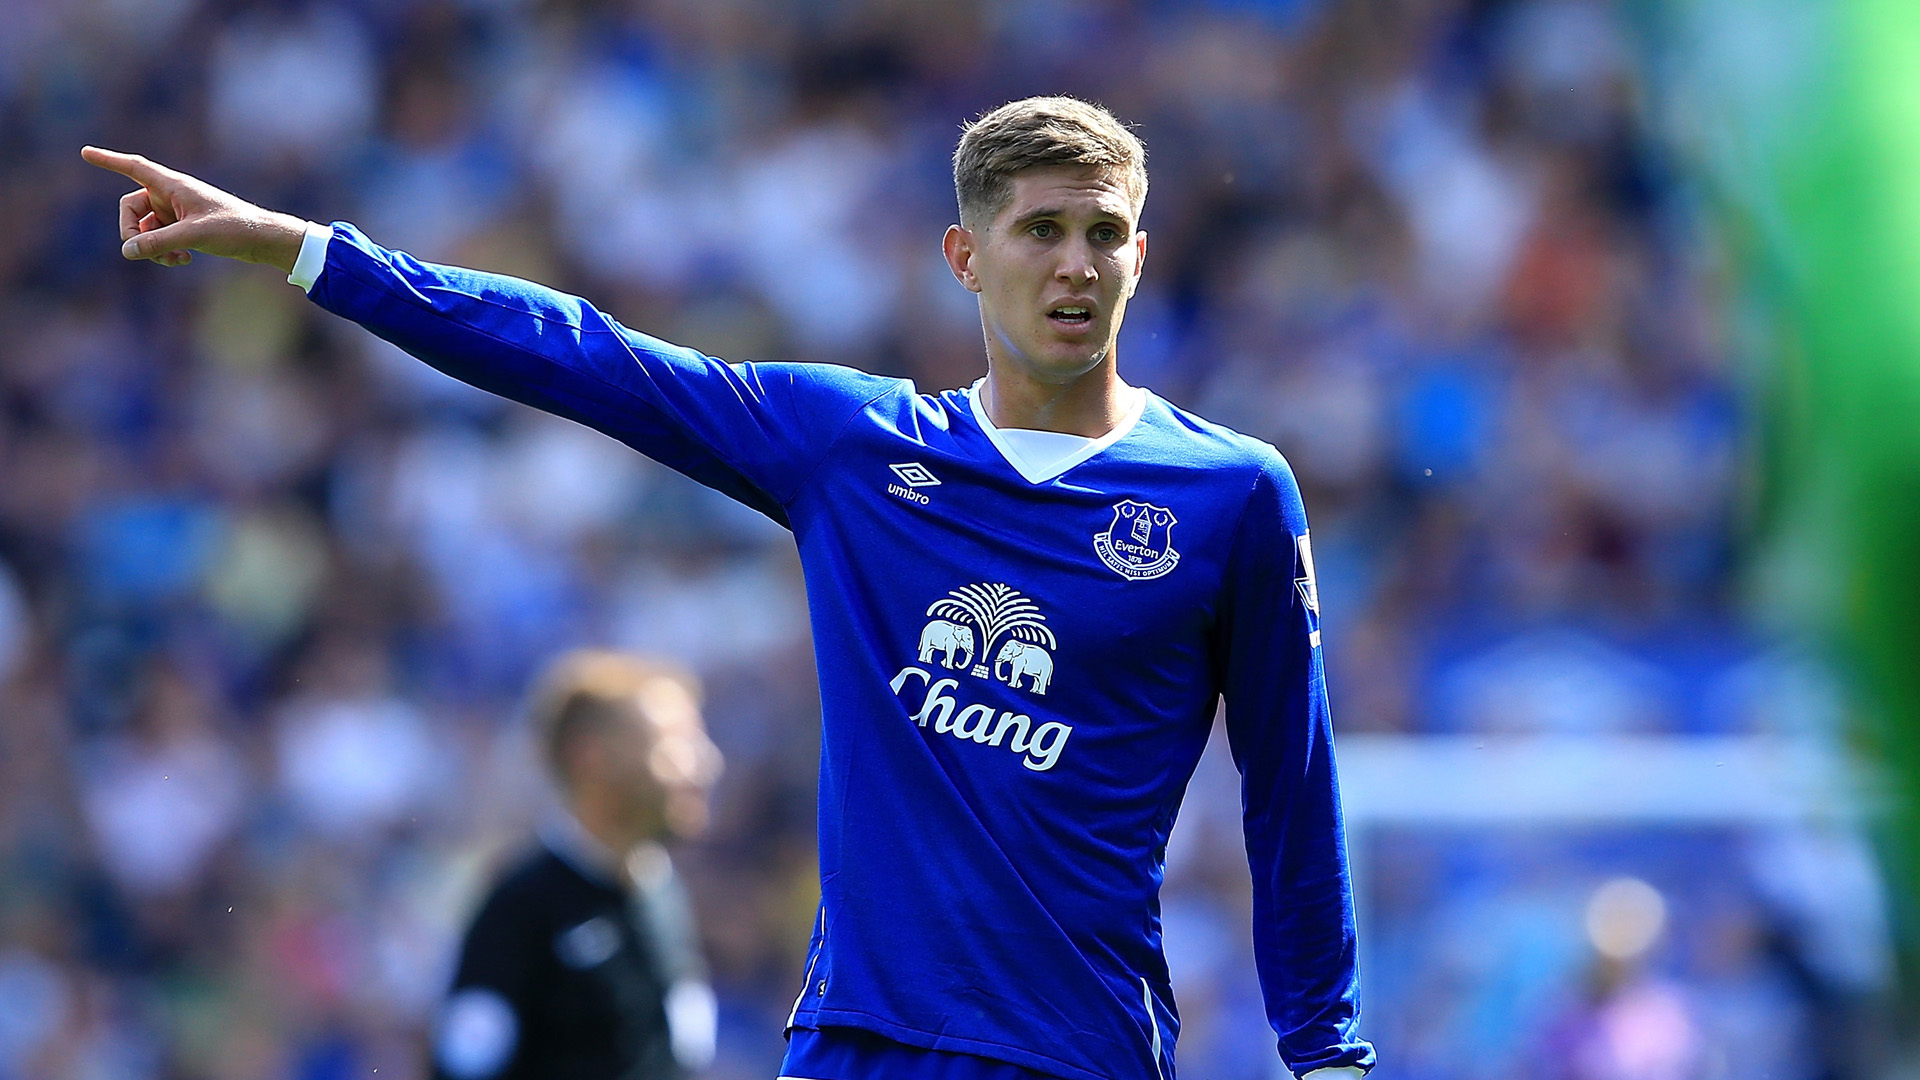 LIVERPOOL, ENGLAND - AUGUST 08: John Stones of Everton during the Barclays Premier League match between Everton and Watford at Goodison Park on August 8, 2015 in Liverpool, England. (Photo by Jan Kruger/Getty Images)